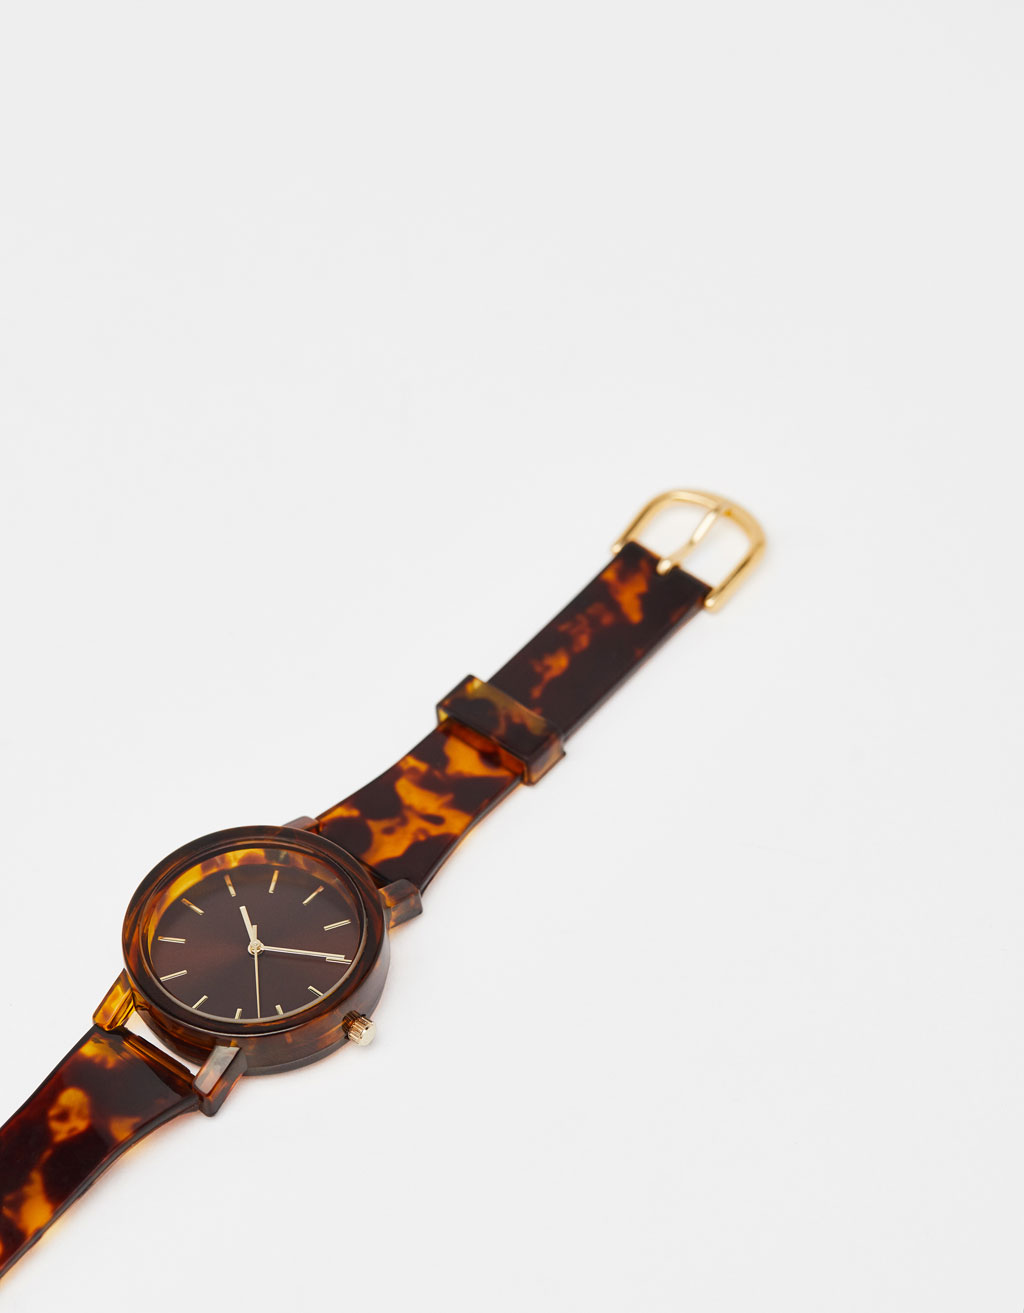 Analogue watch with tortoiseshell-effect wristband